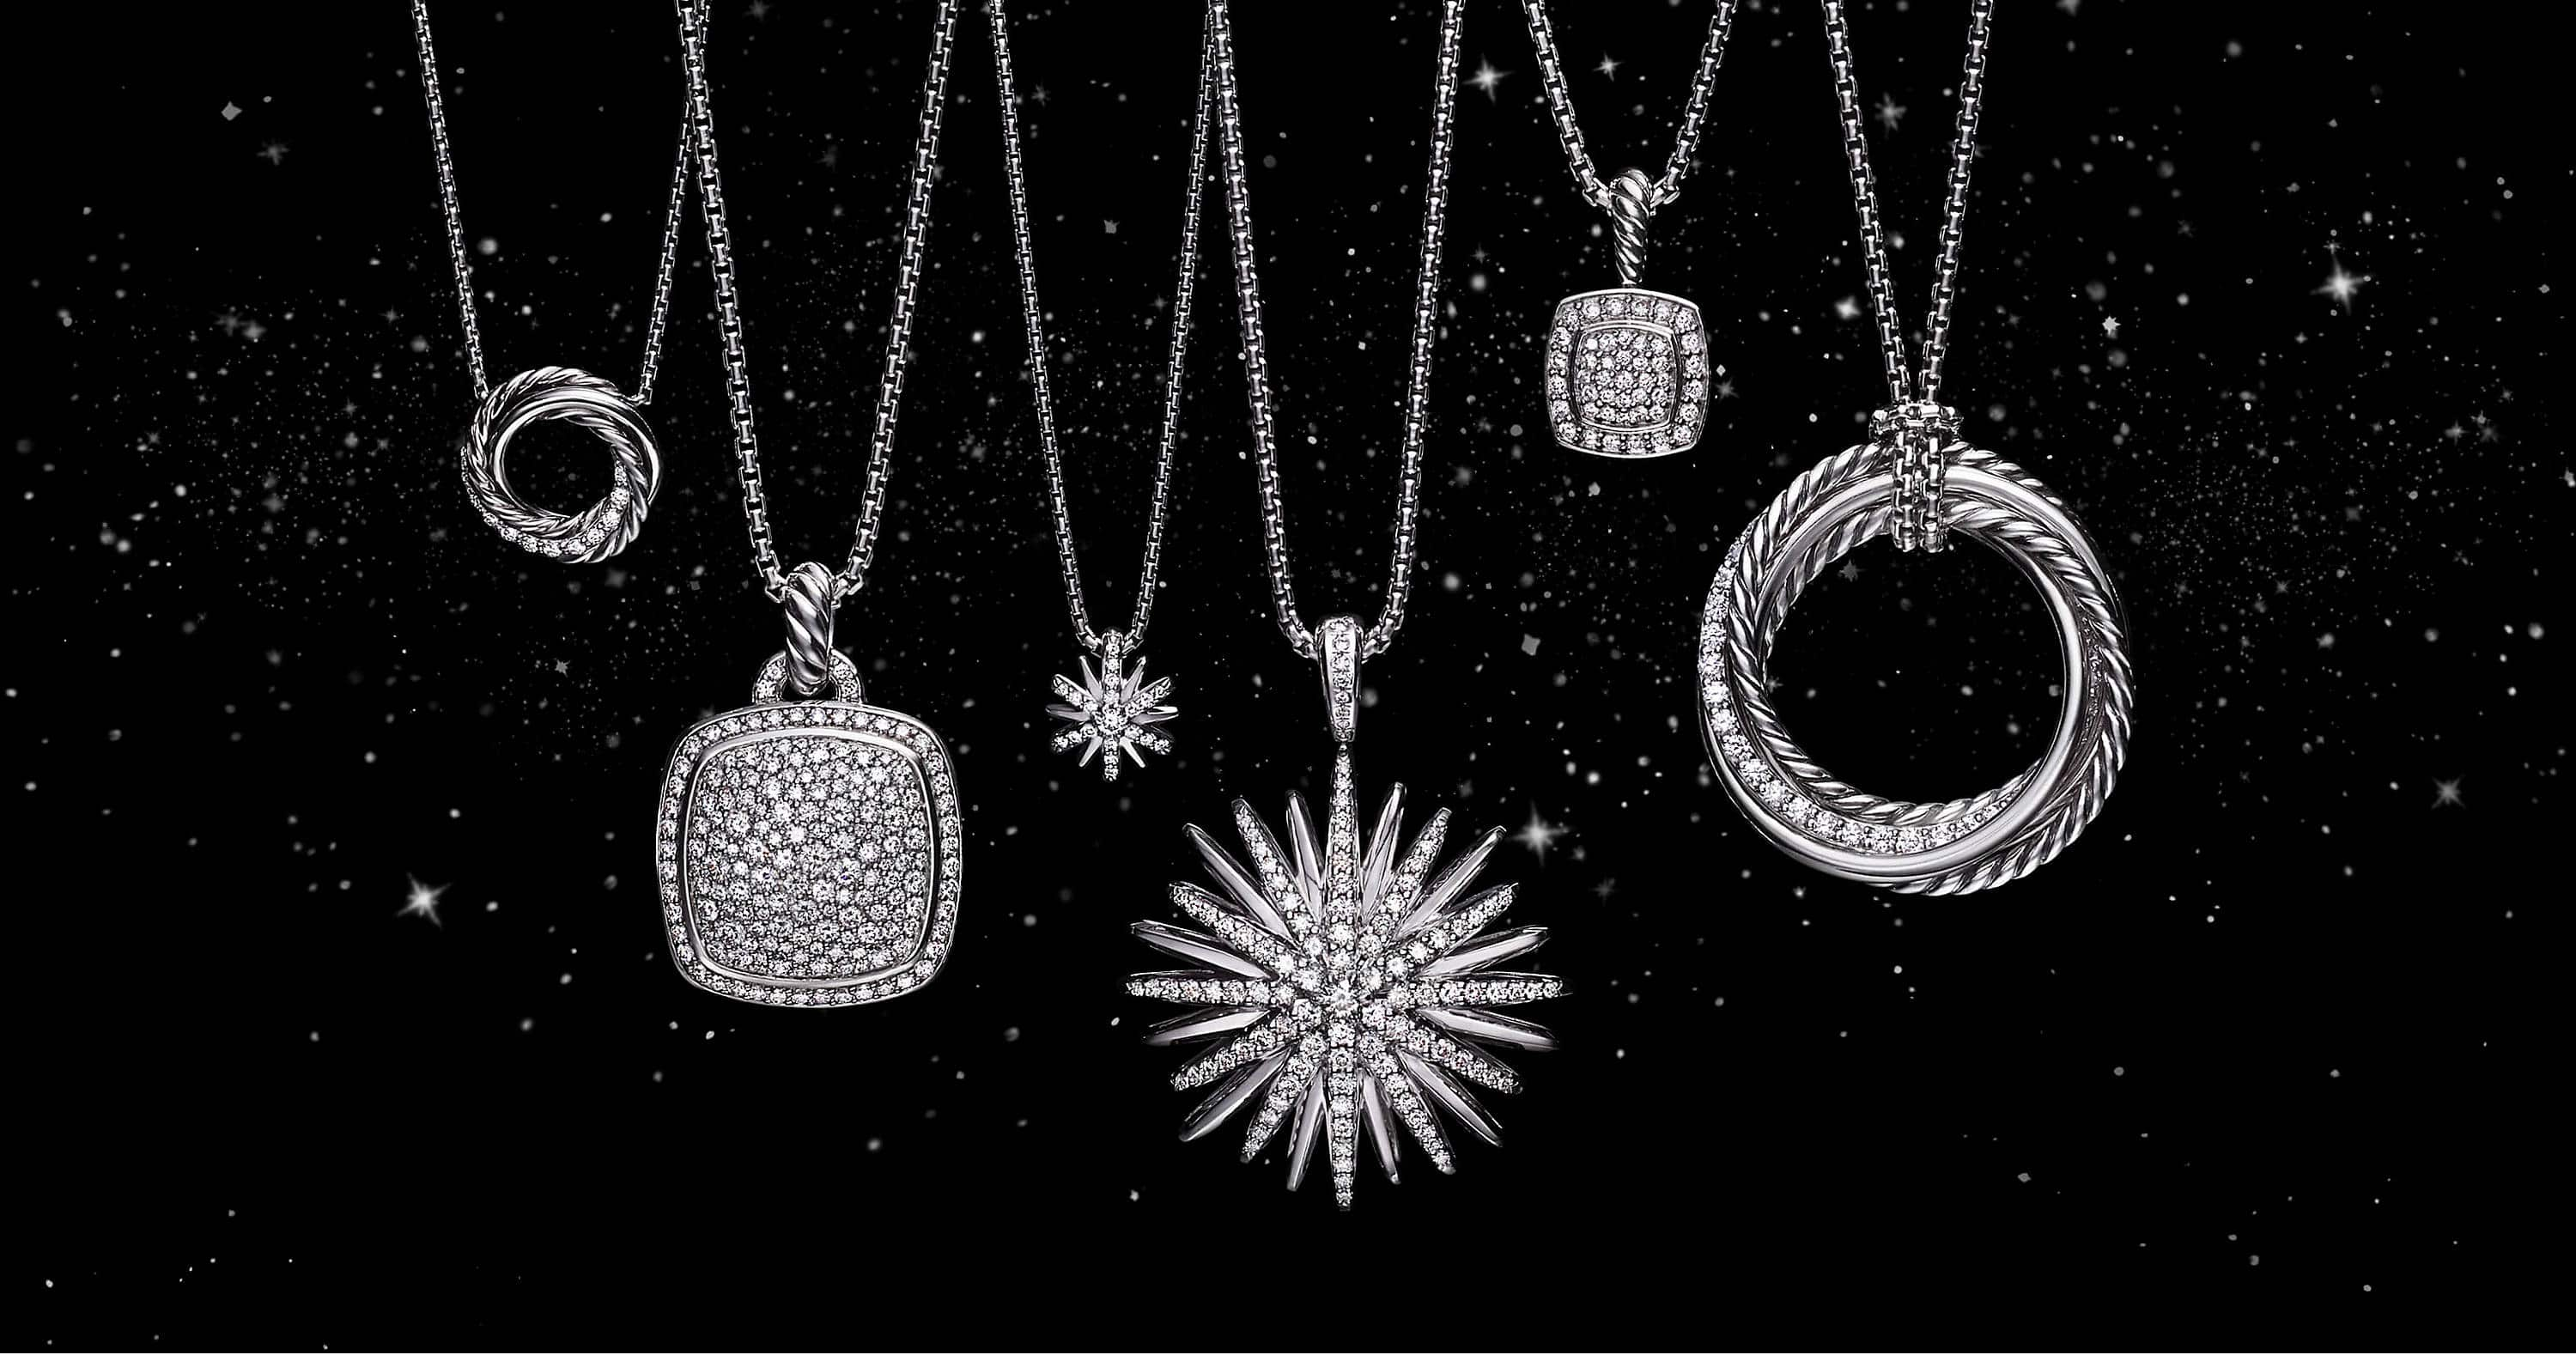 A color photo shows a horizontal row of six David Yurman pendant necklaces hanging in front of a starry night sky. The women's jewelry is crafted from 18K white gold or sterling silver with pavé diamonds. The pendants are shaped like stars, twisted circles of Cable or a cushion-cut stone.